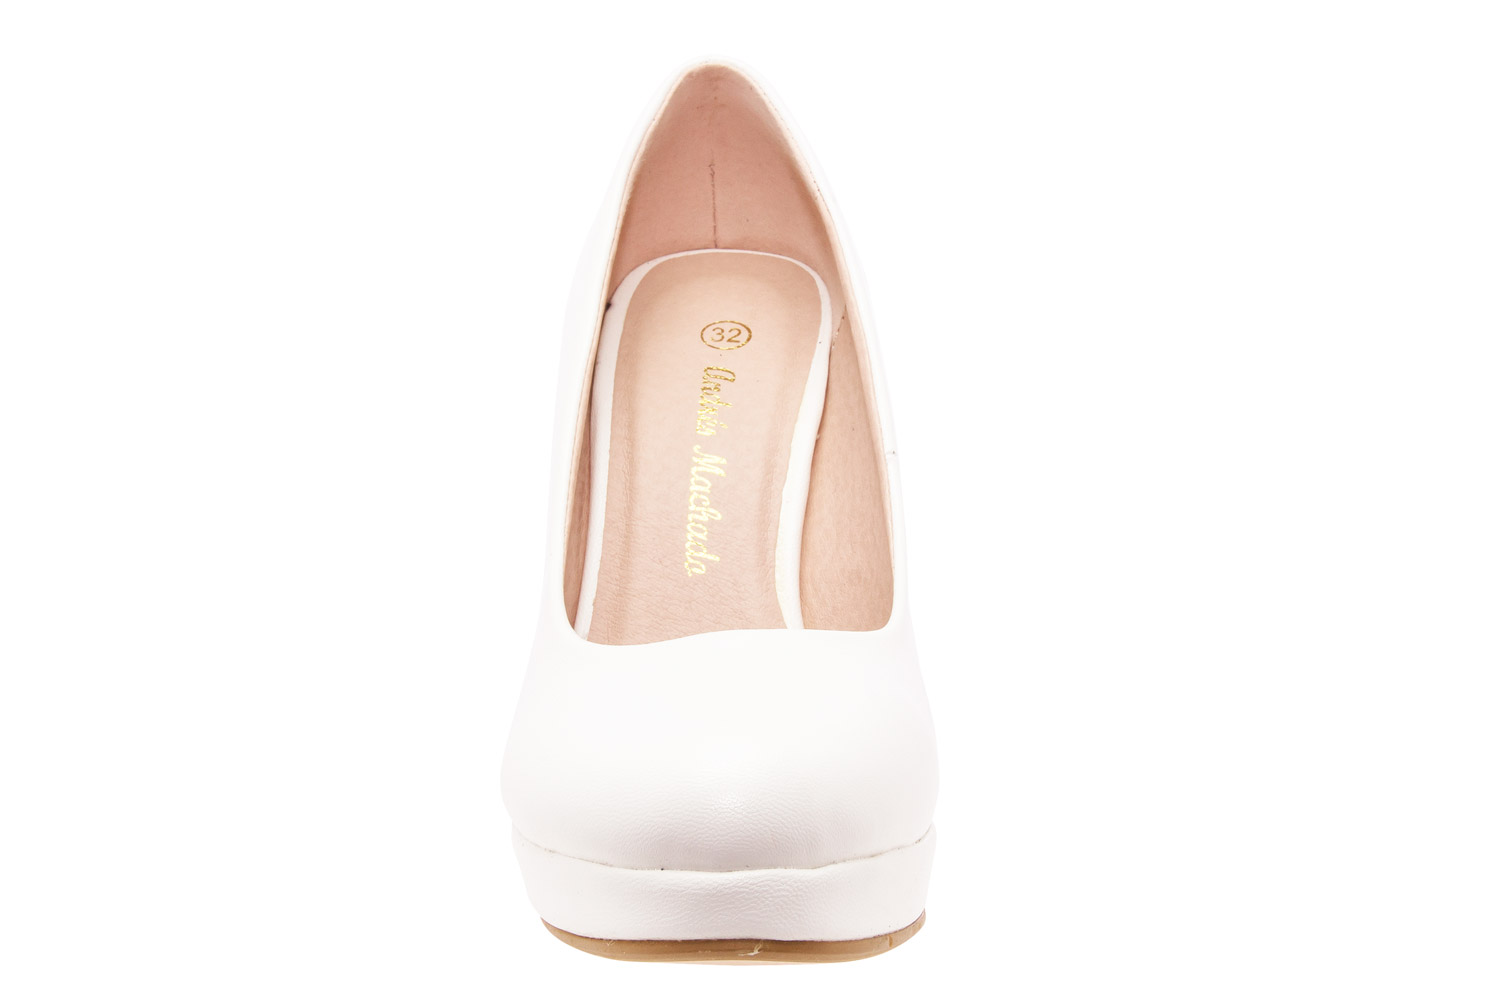 Salones Pumps en Soft Blanco y Tacon Stiletto.